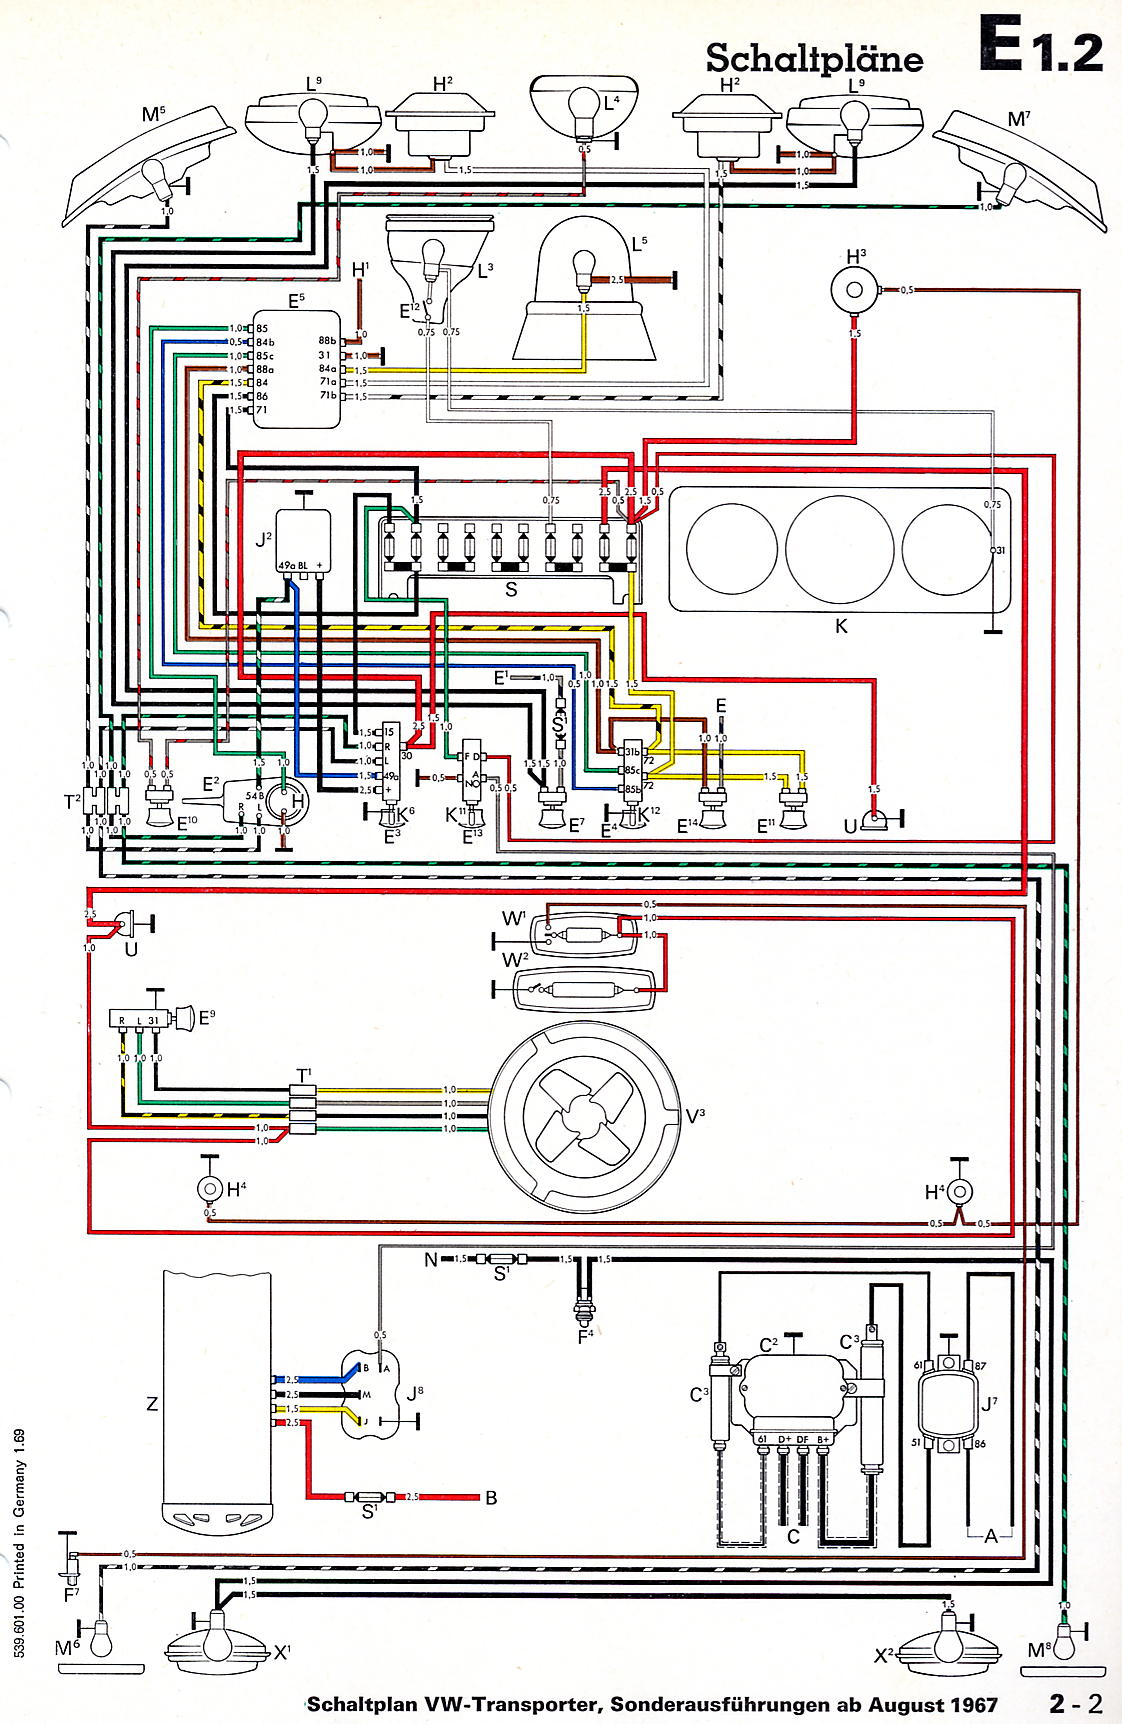 Transporter_from_August_1967_aditional_items vw wiring diagrams 1970 vw wiring diagram at mifinder.co